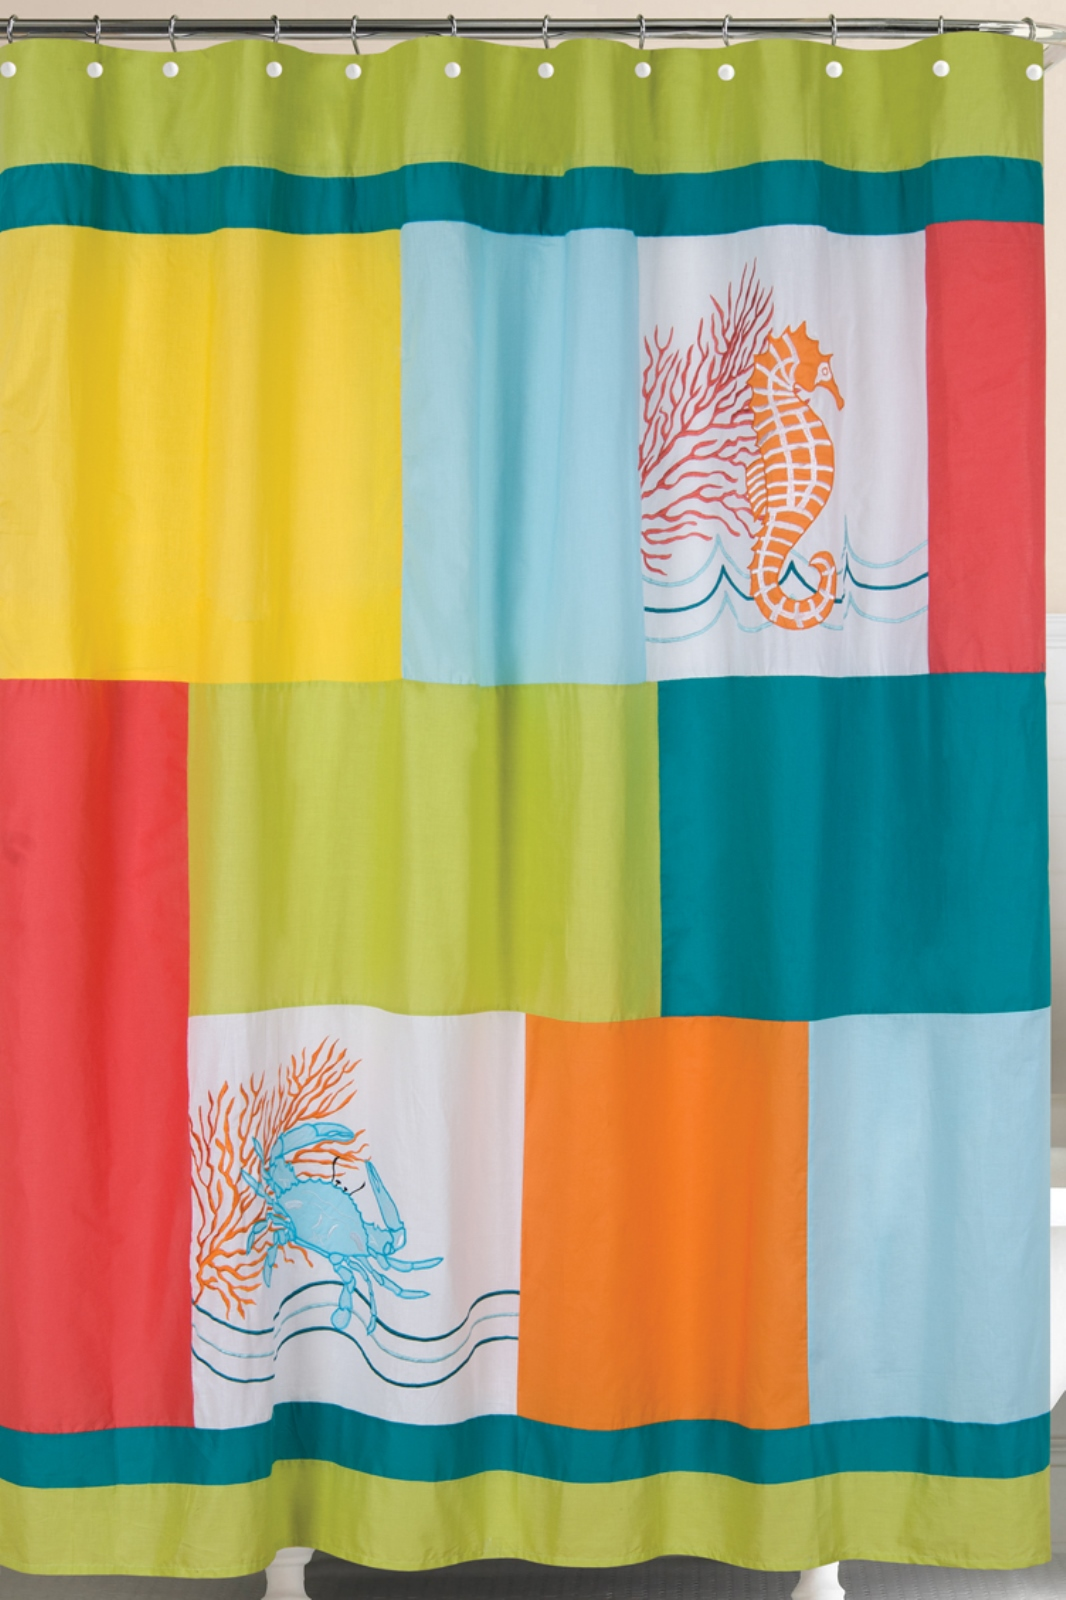 Tropic Escape Seahorse Blue Crab Coral 72 X 72 Inch Bath Shower Curtain EBay